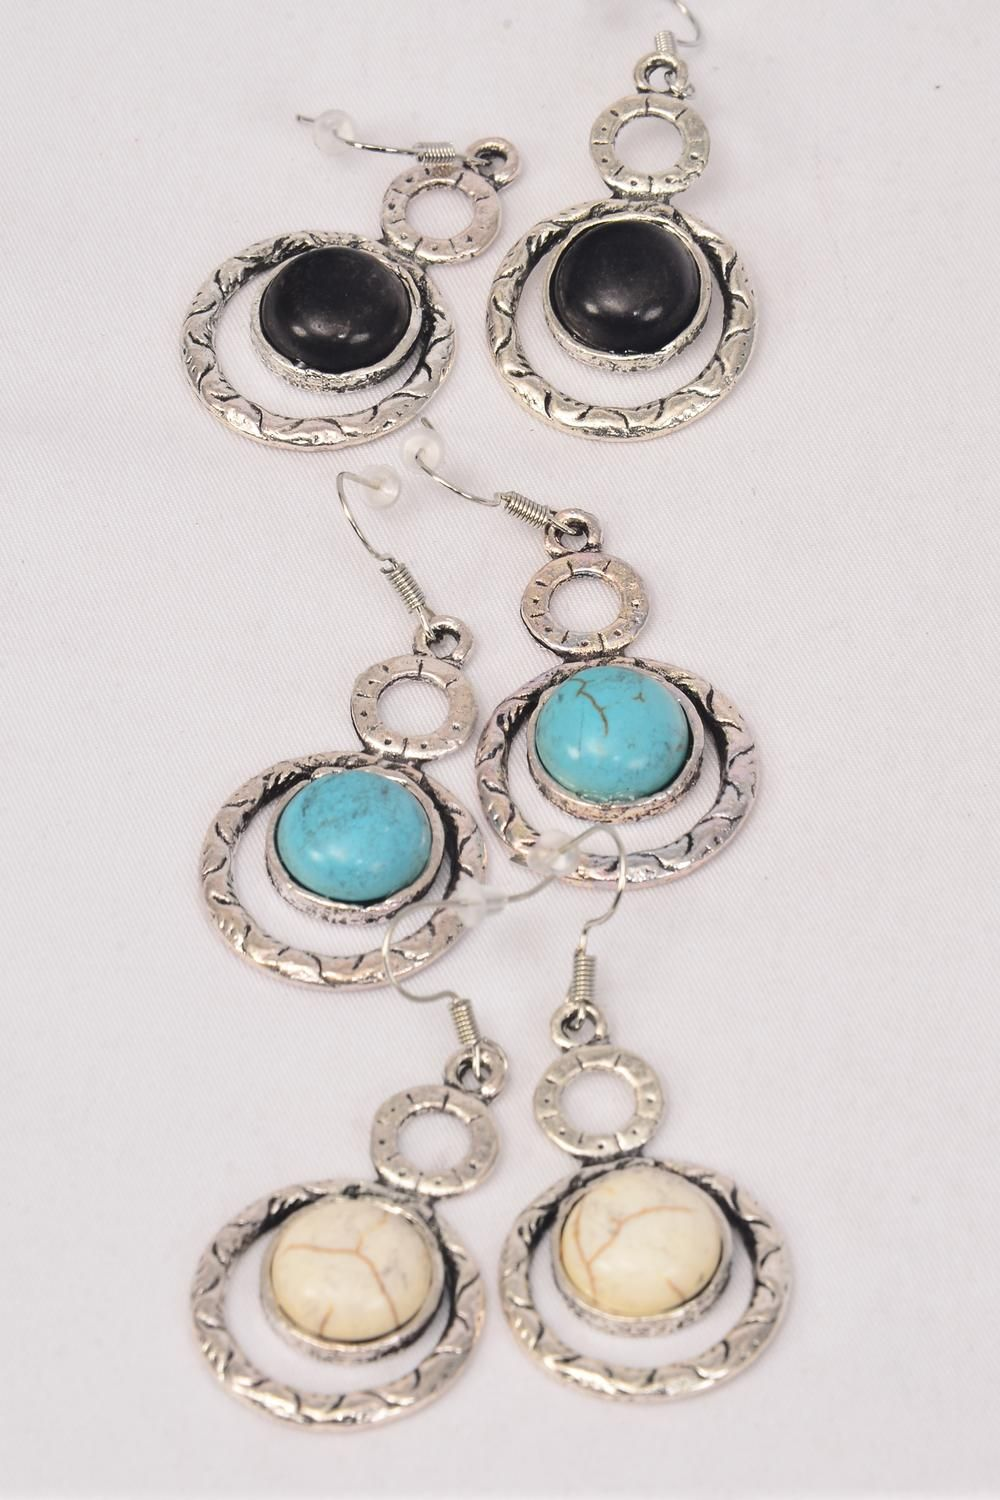 "Earrings Metal Antique Round Dangle Semiprecious Stone/DZ match 76010 **Fish Hook** Size-1.5""x 1"" Wide,4 Black,4 Ivory,4 Turquoise Asst,Earring Card & OPP Bag & UPC Code -"